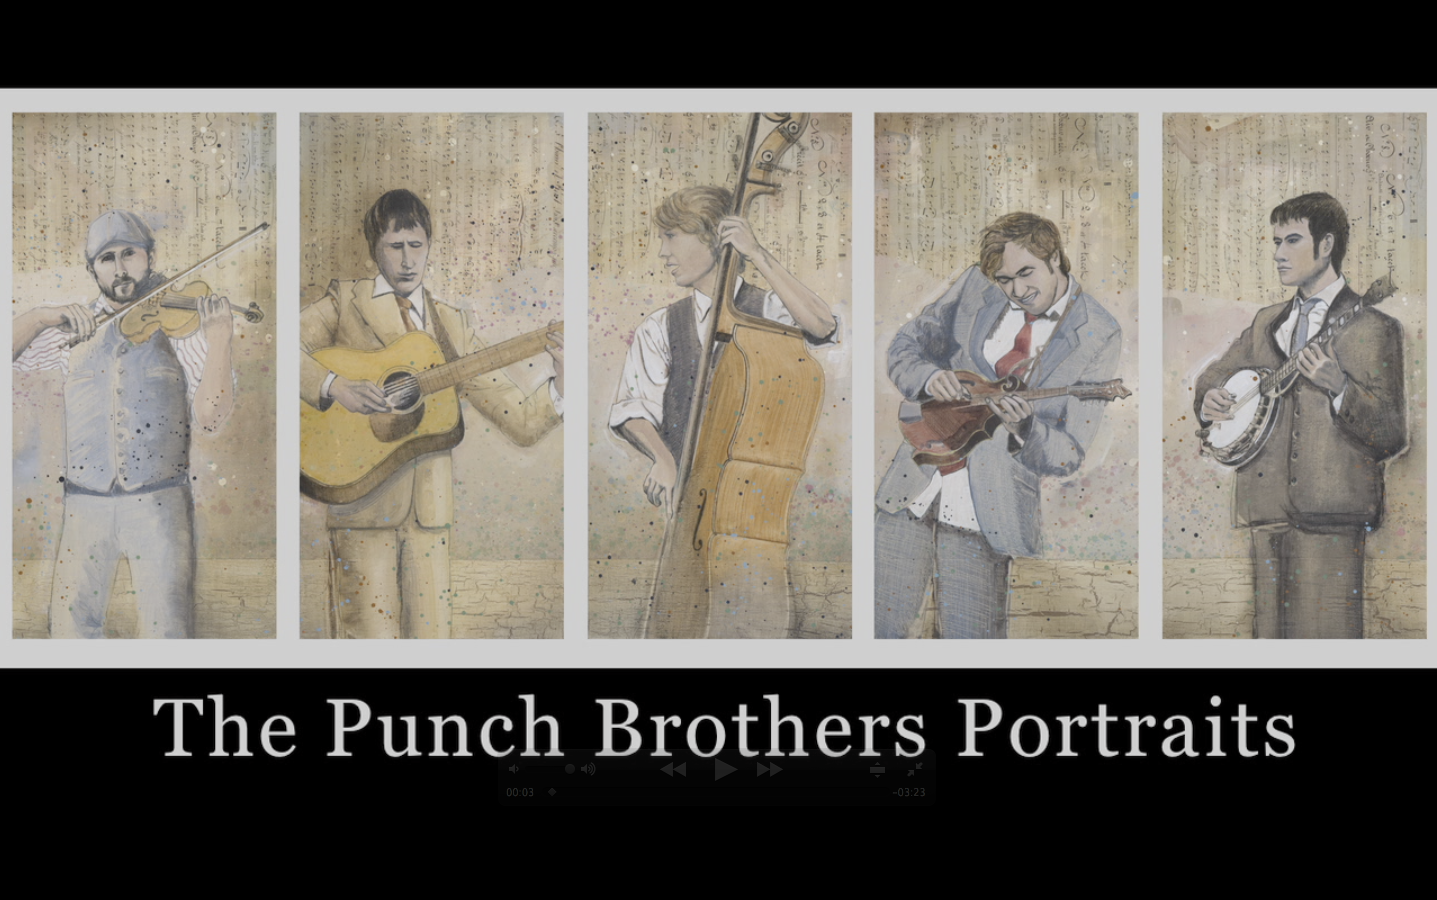 The Punch Brothers Portraits